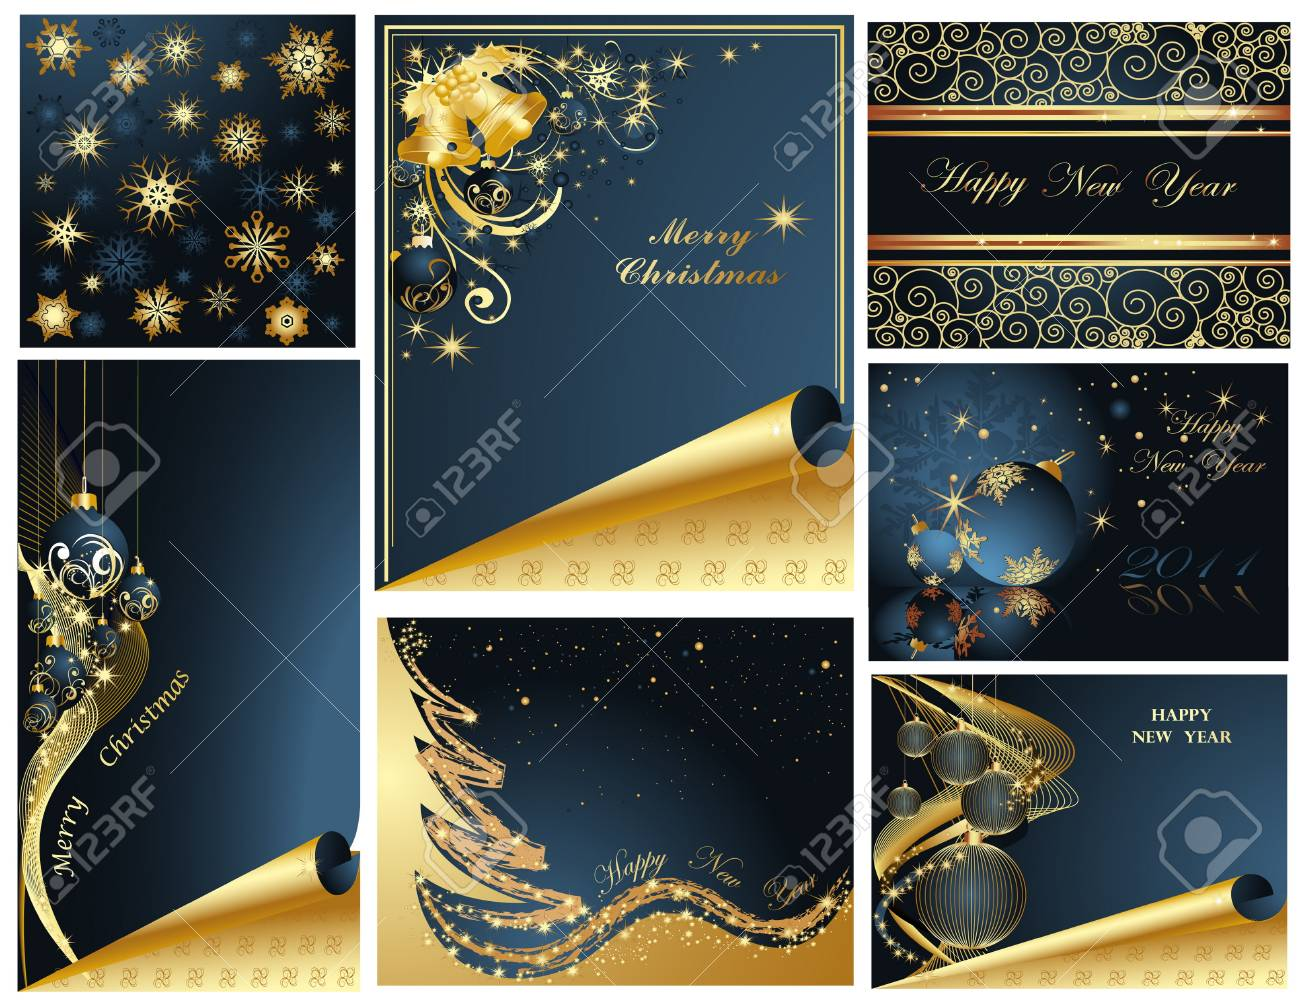 Merry Christmas and Happy New Year collection Stock Vector - 8310501